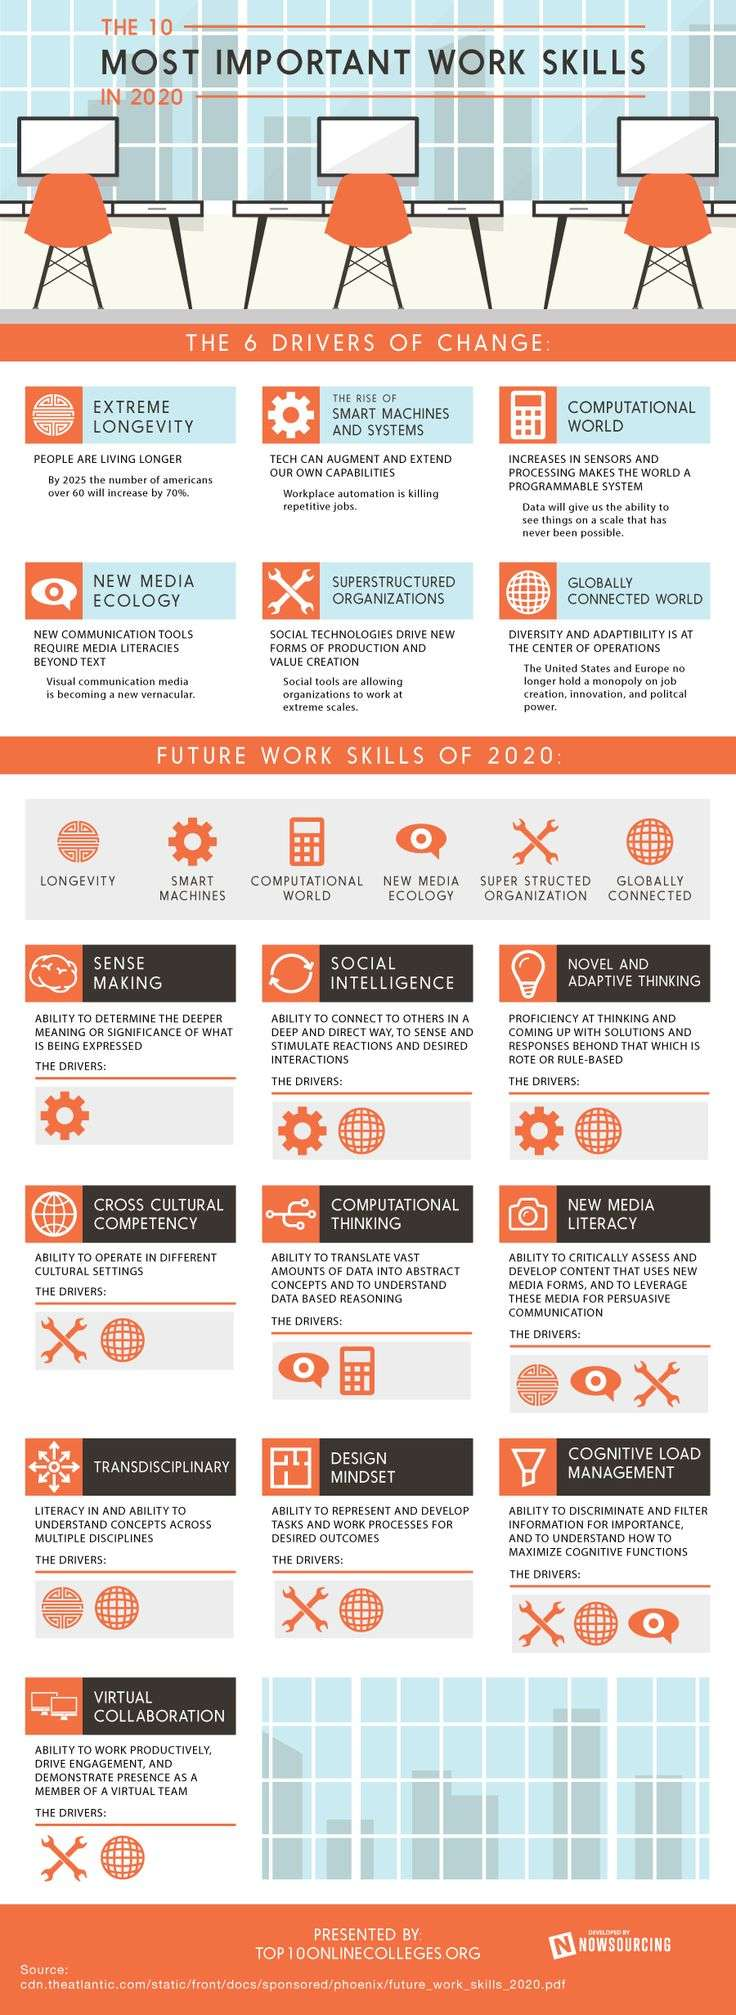 10 Most Important Work Skills in 2020